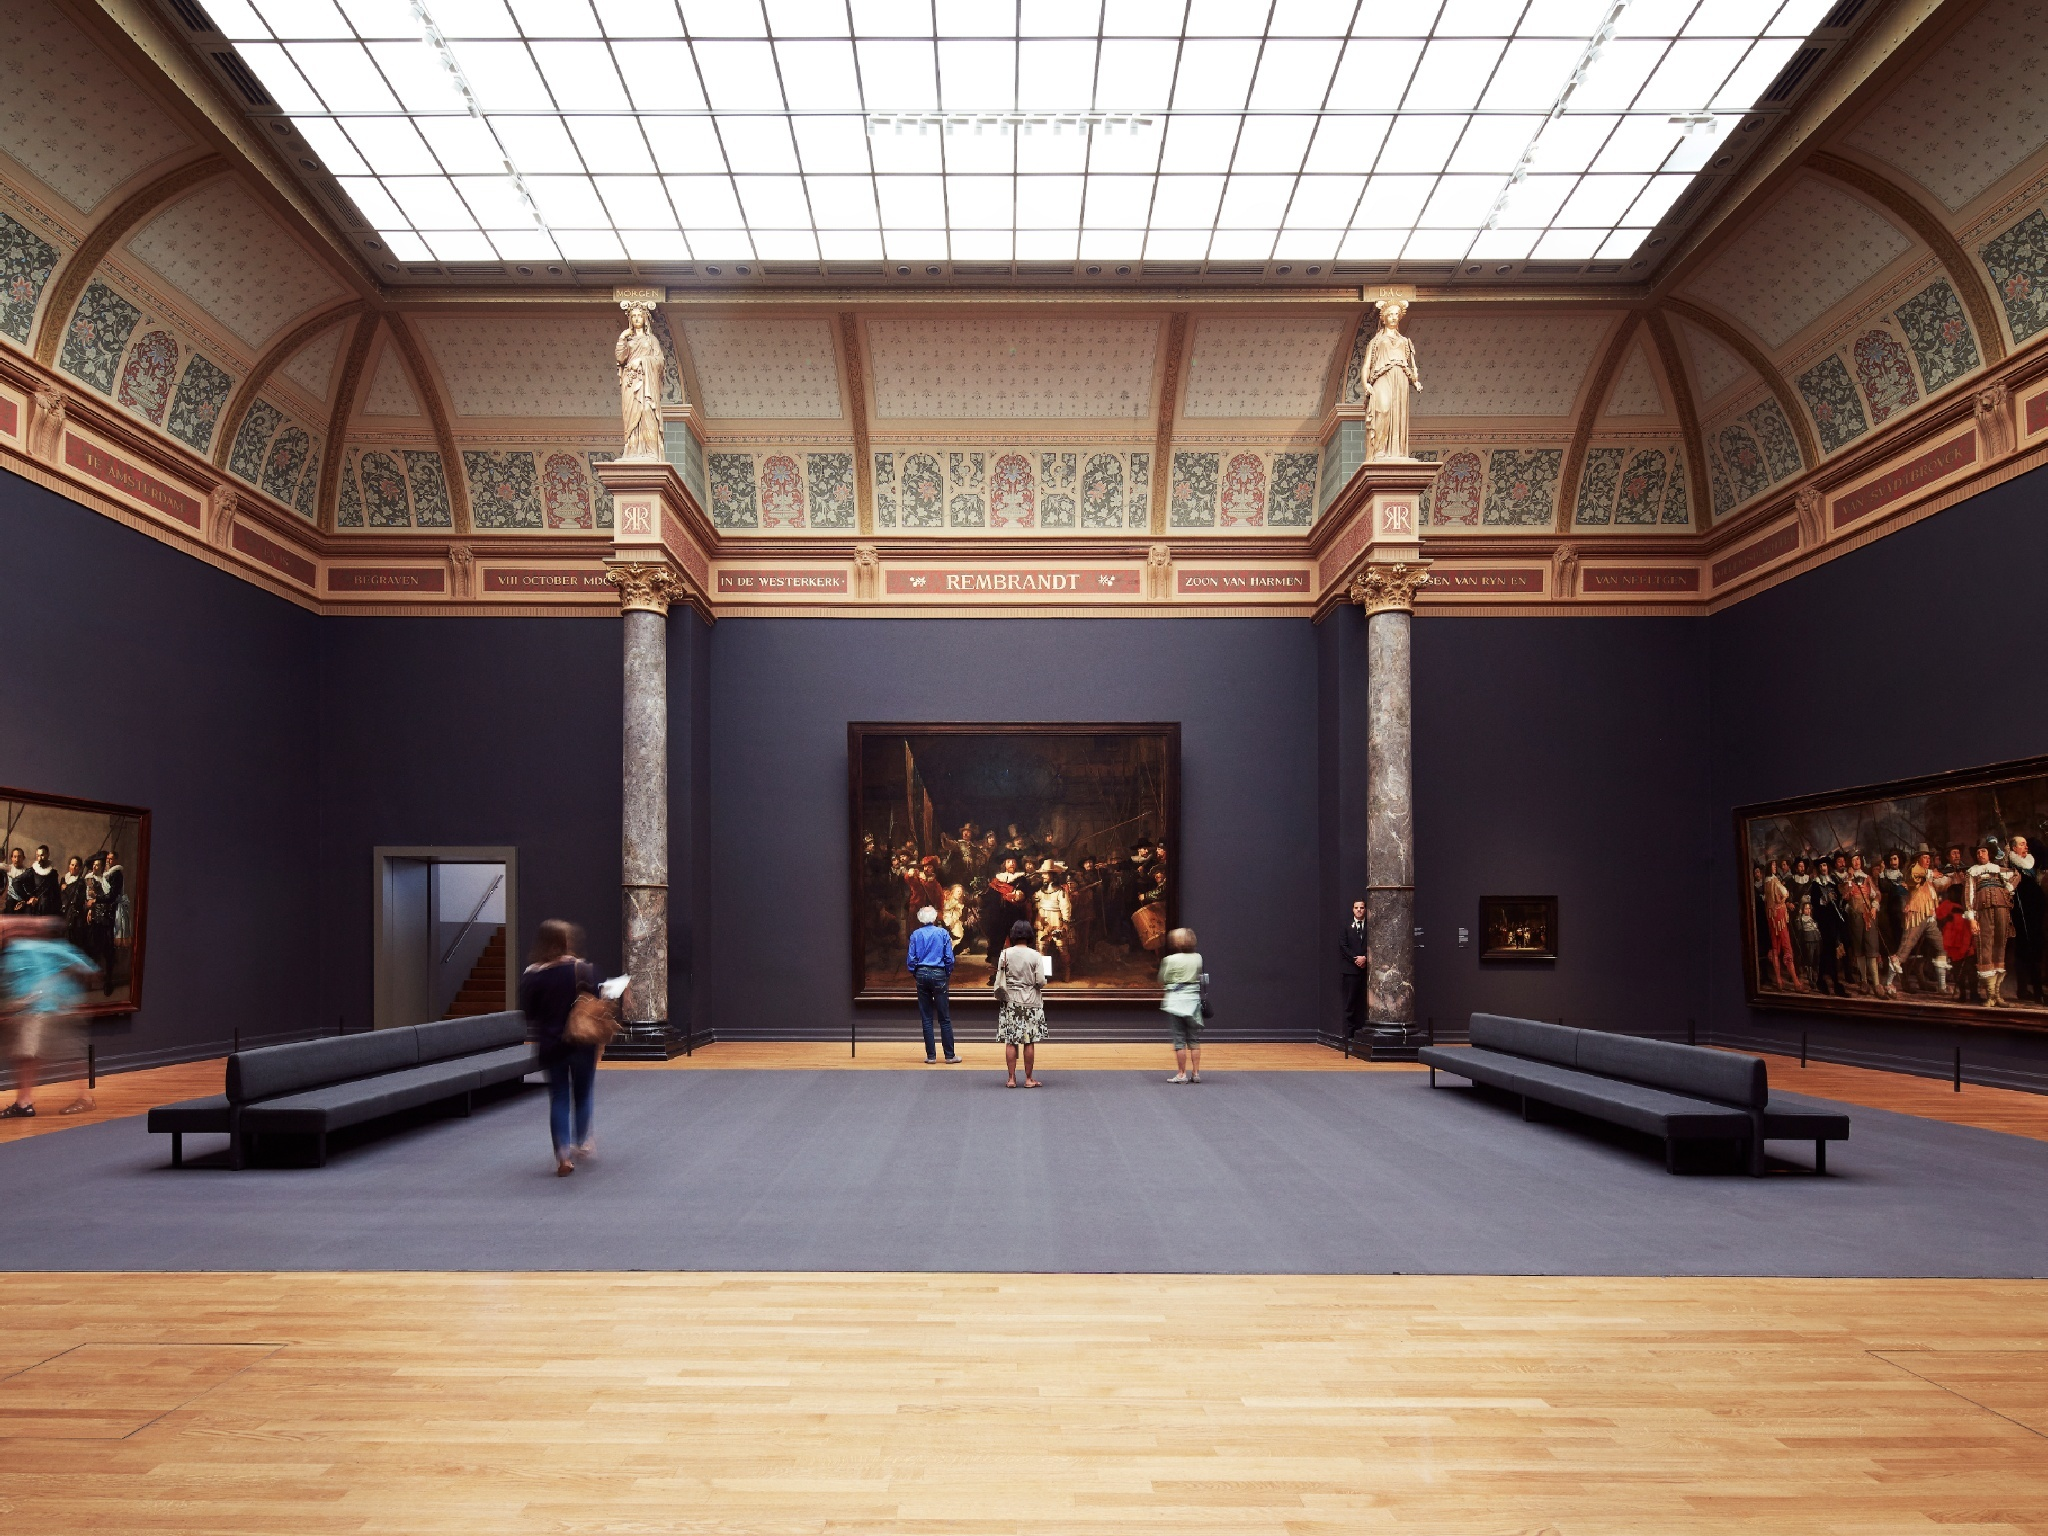 Check out this virtual tour of Amsterdam's Rijksmuseum